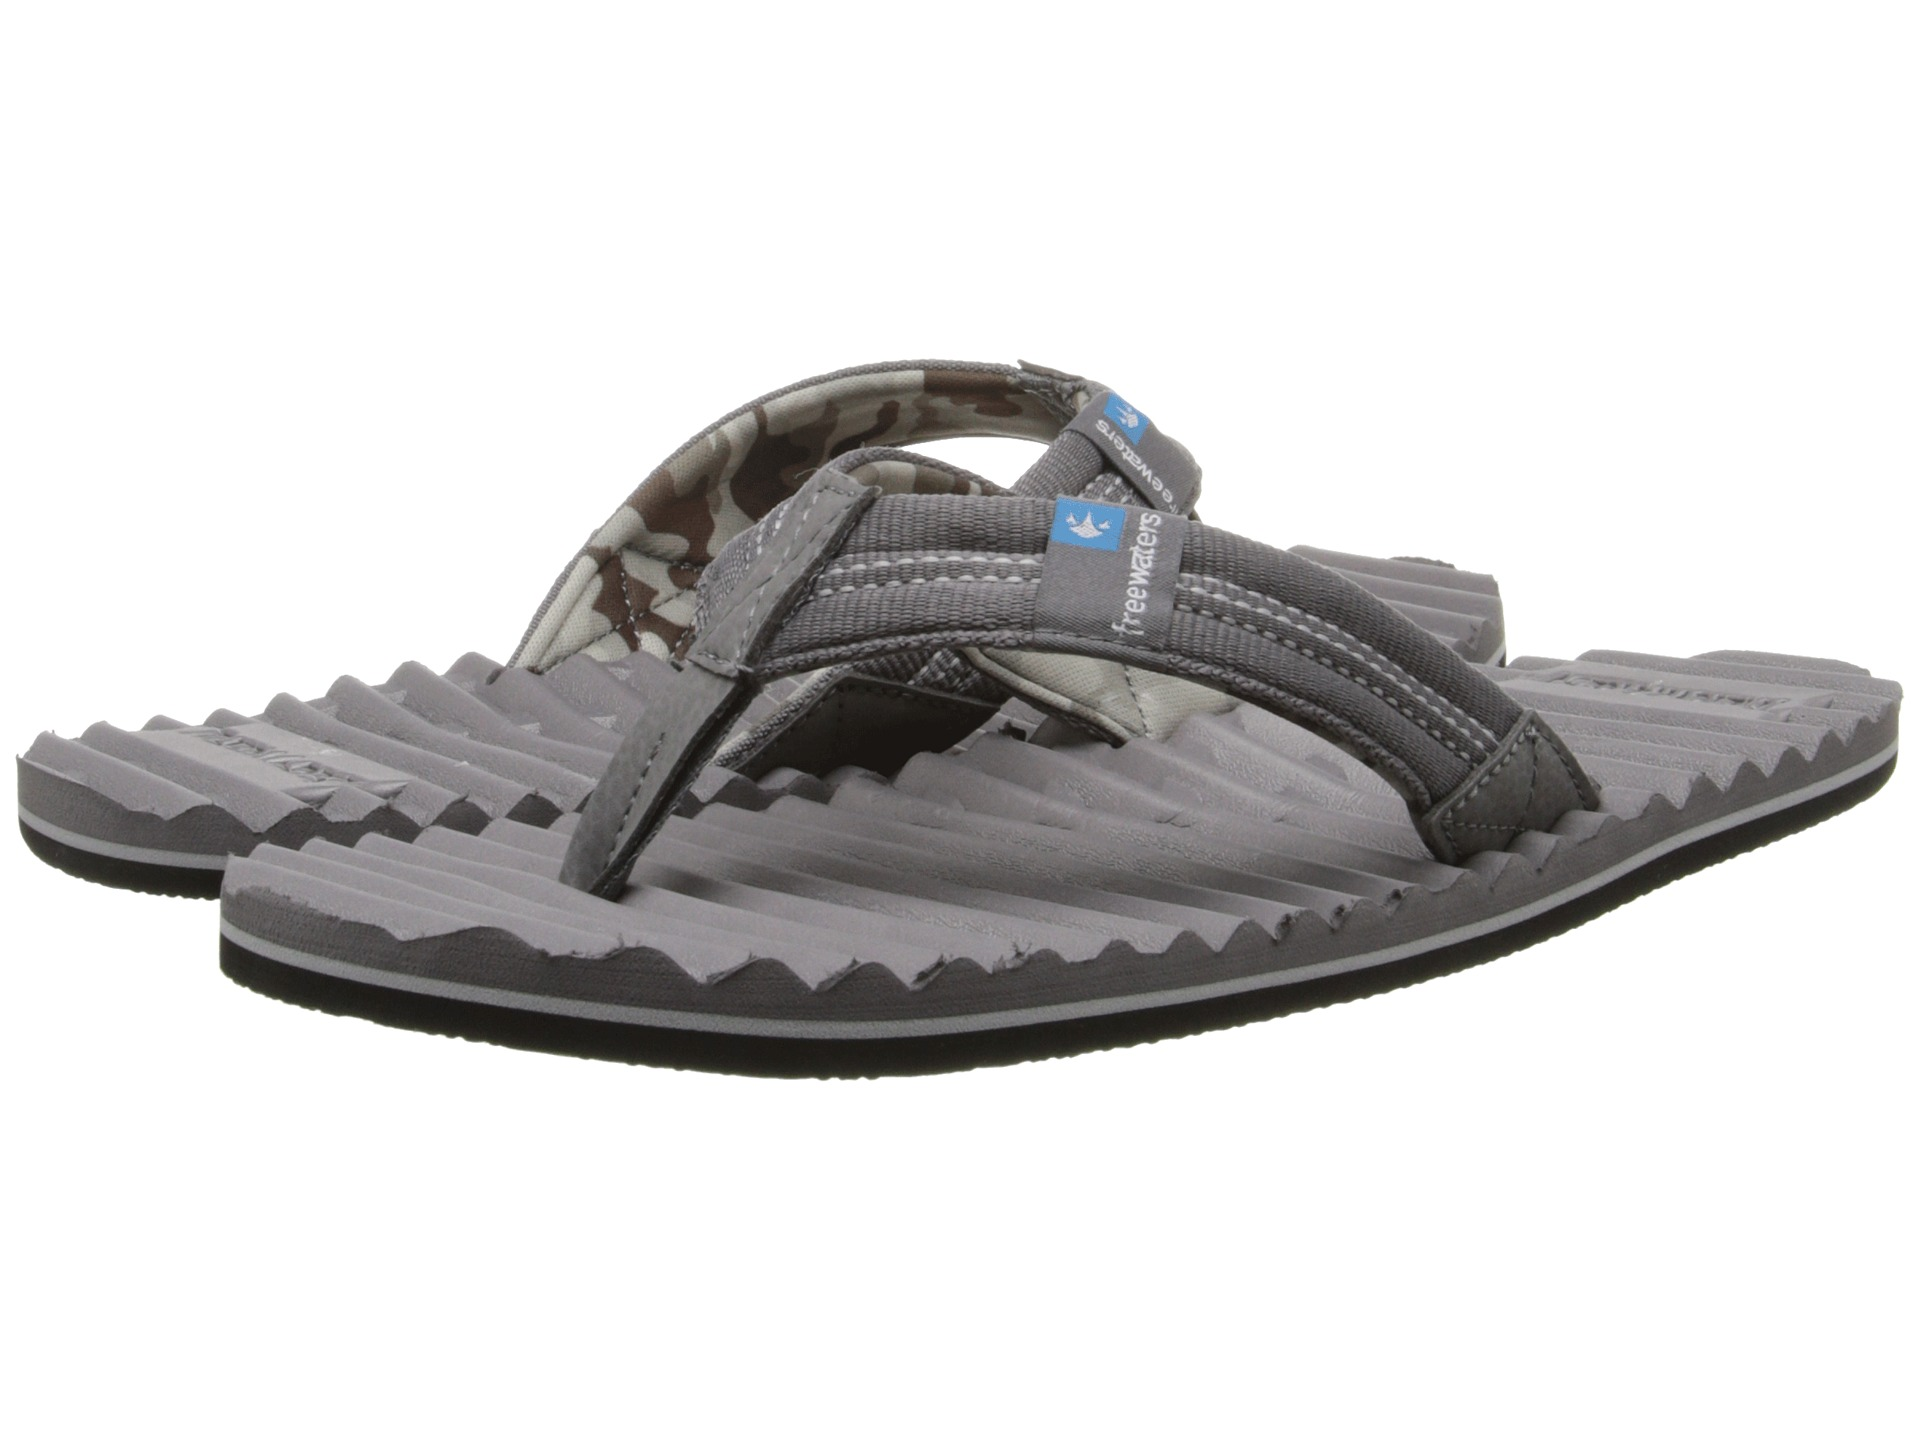 like comforter slippersmens men flop walking comfortable is most flip pin that the slippers are a flops cloud earth just on for